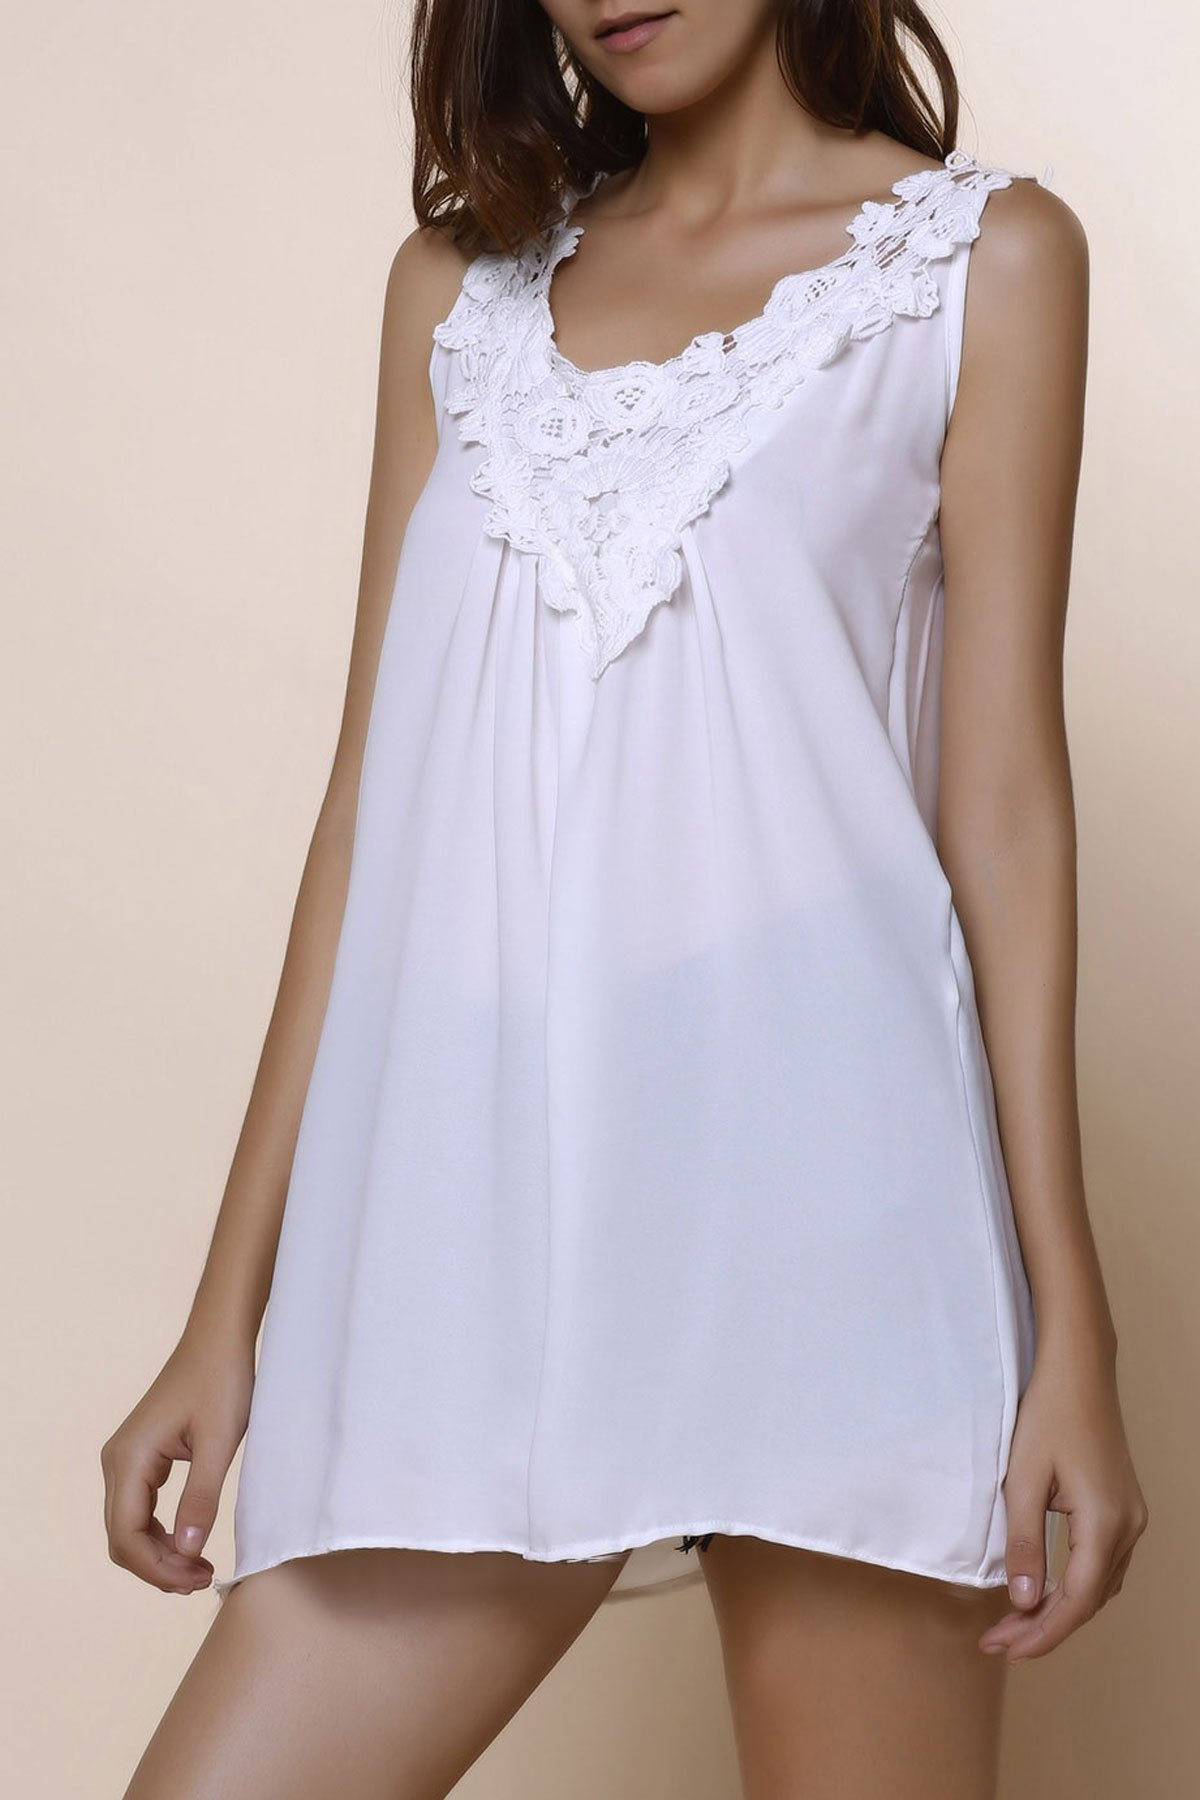 Romantic White Lace Spliced Scoop Neck Tank Top For Women 139474404